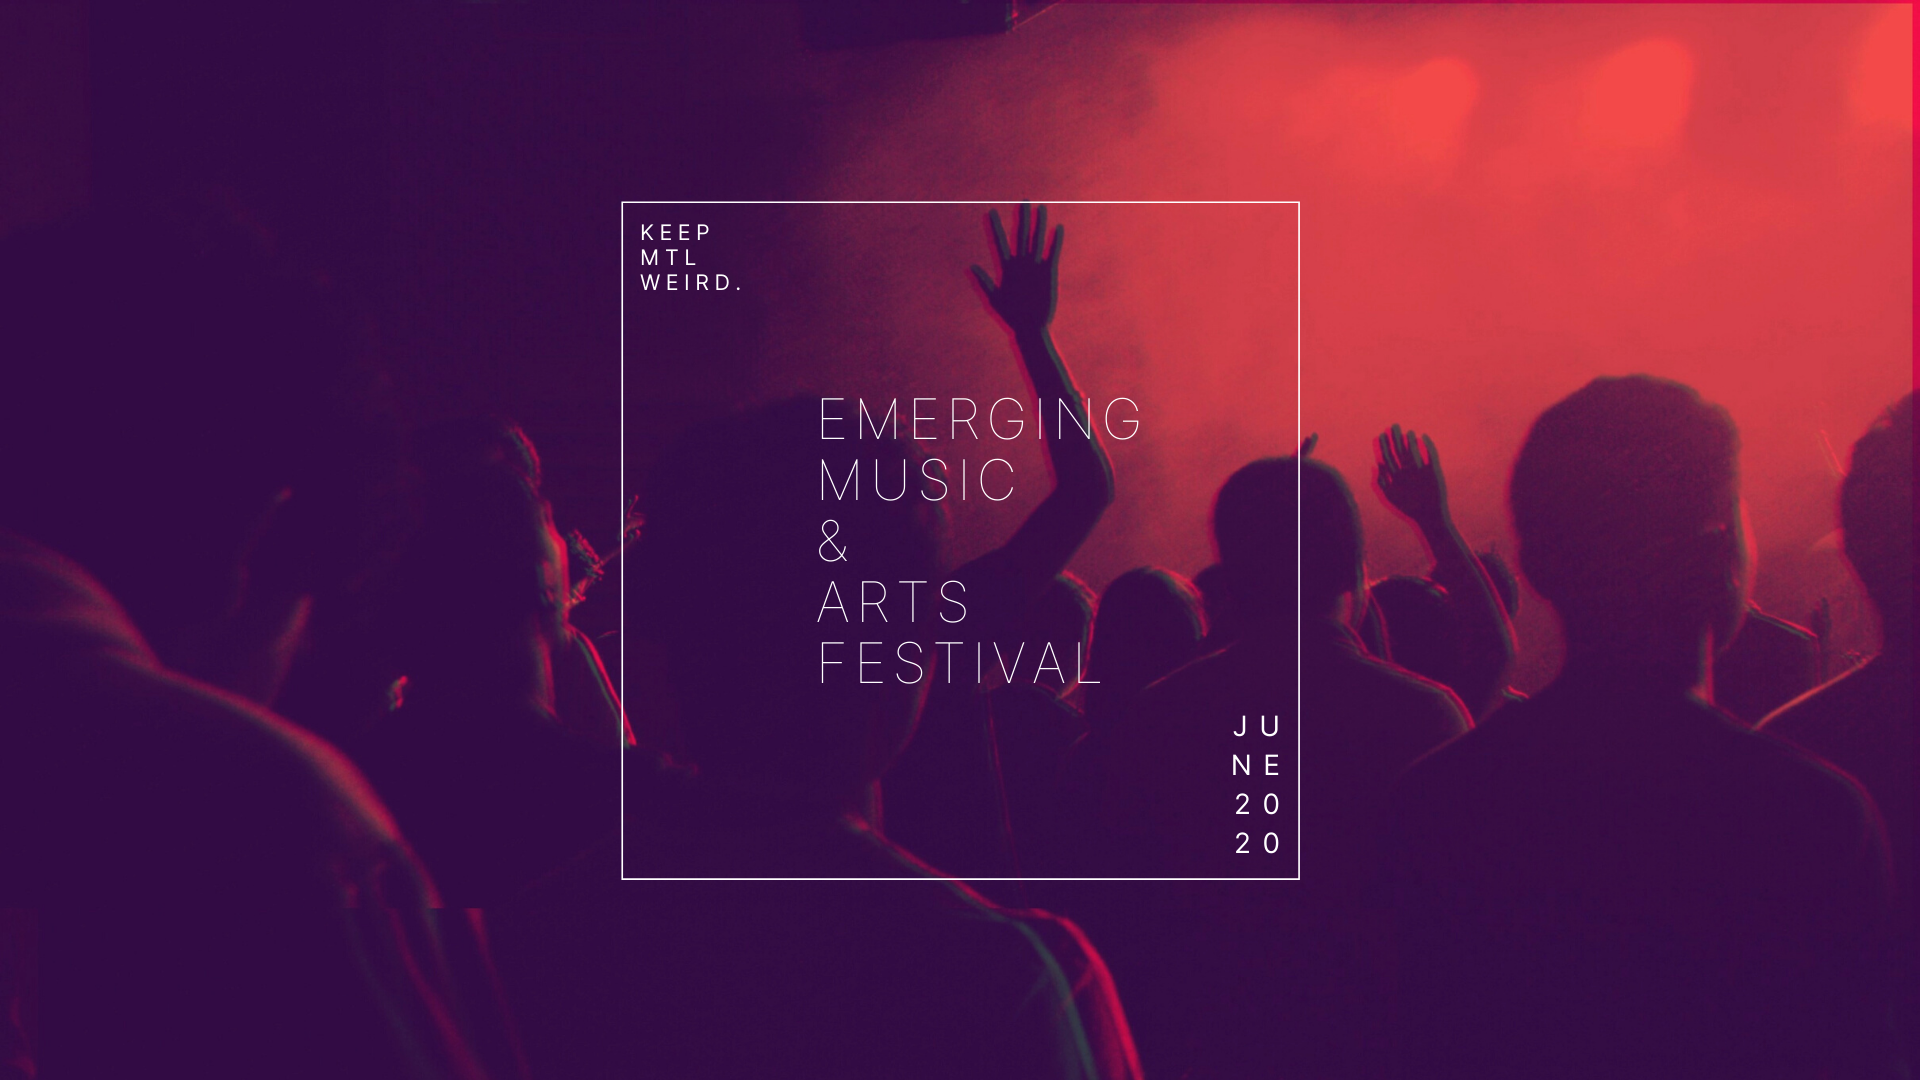 KMW Emerging Music and Arts Festival